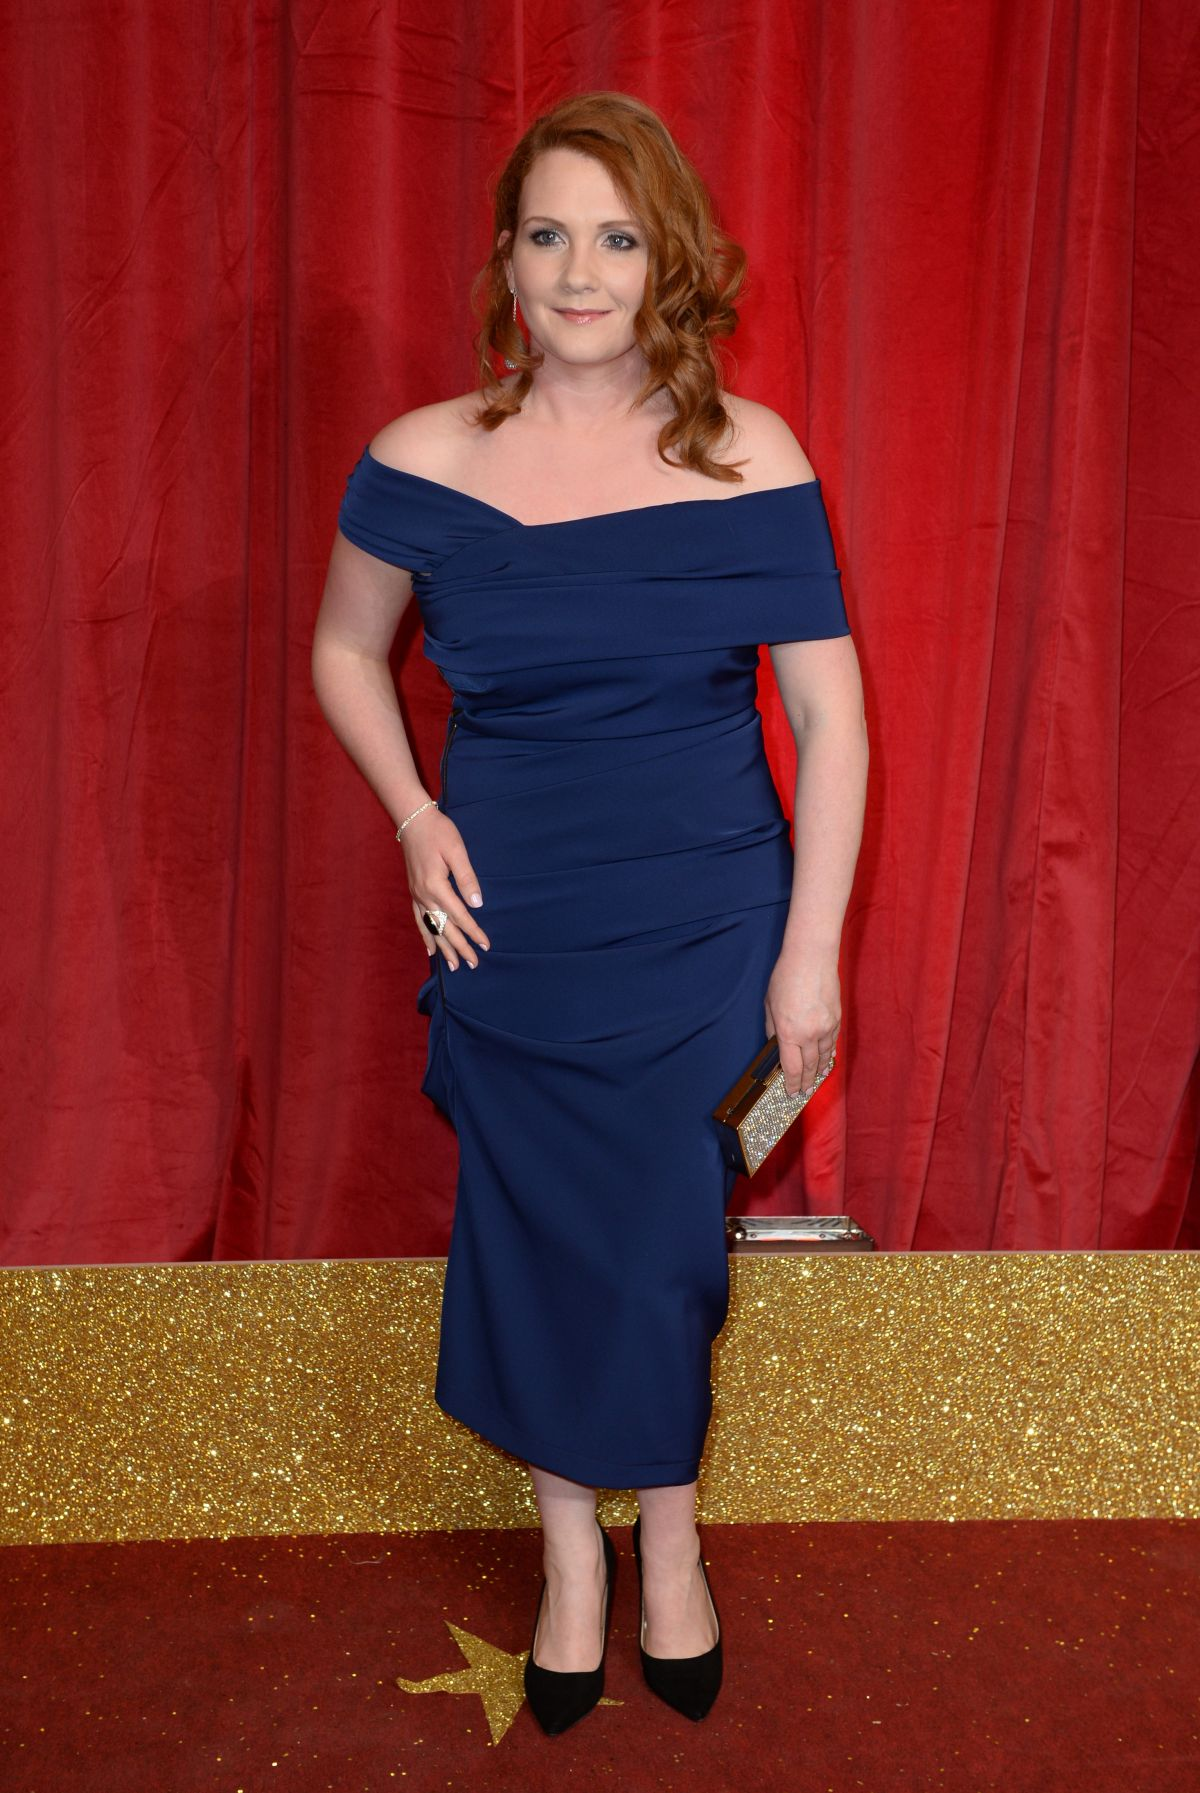 JENNIE MCALPINE at British Soap Awards 2016 in London 05/28/2016